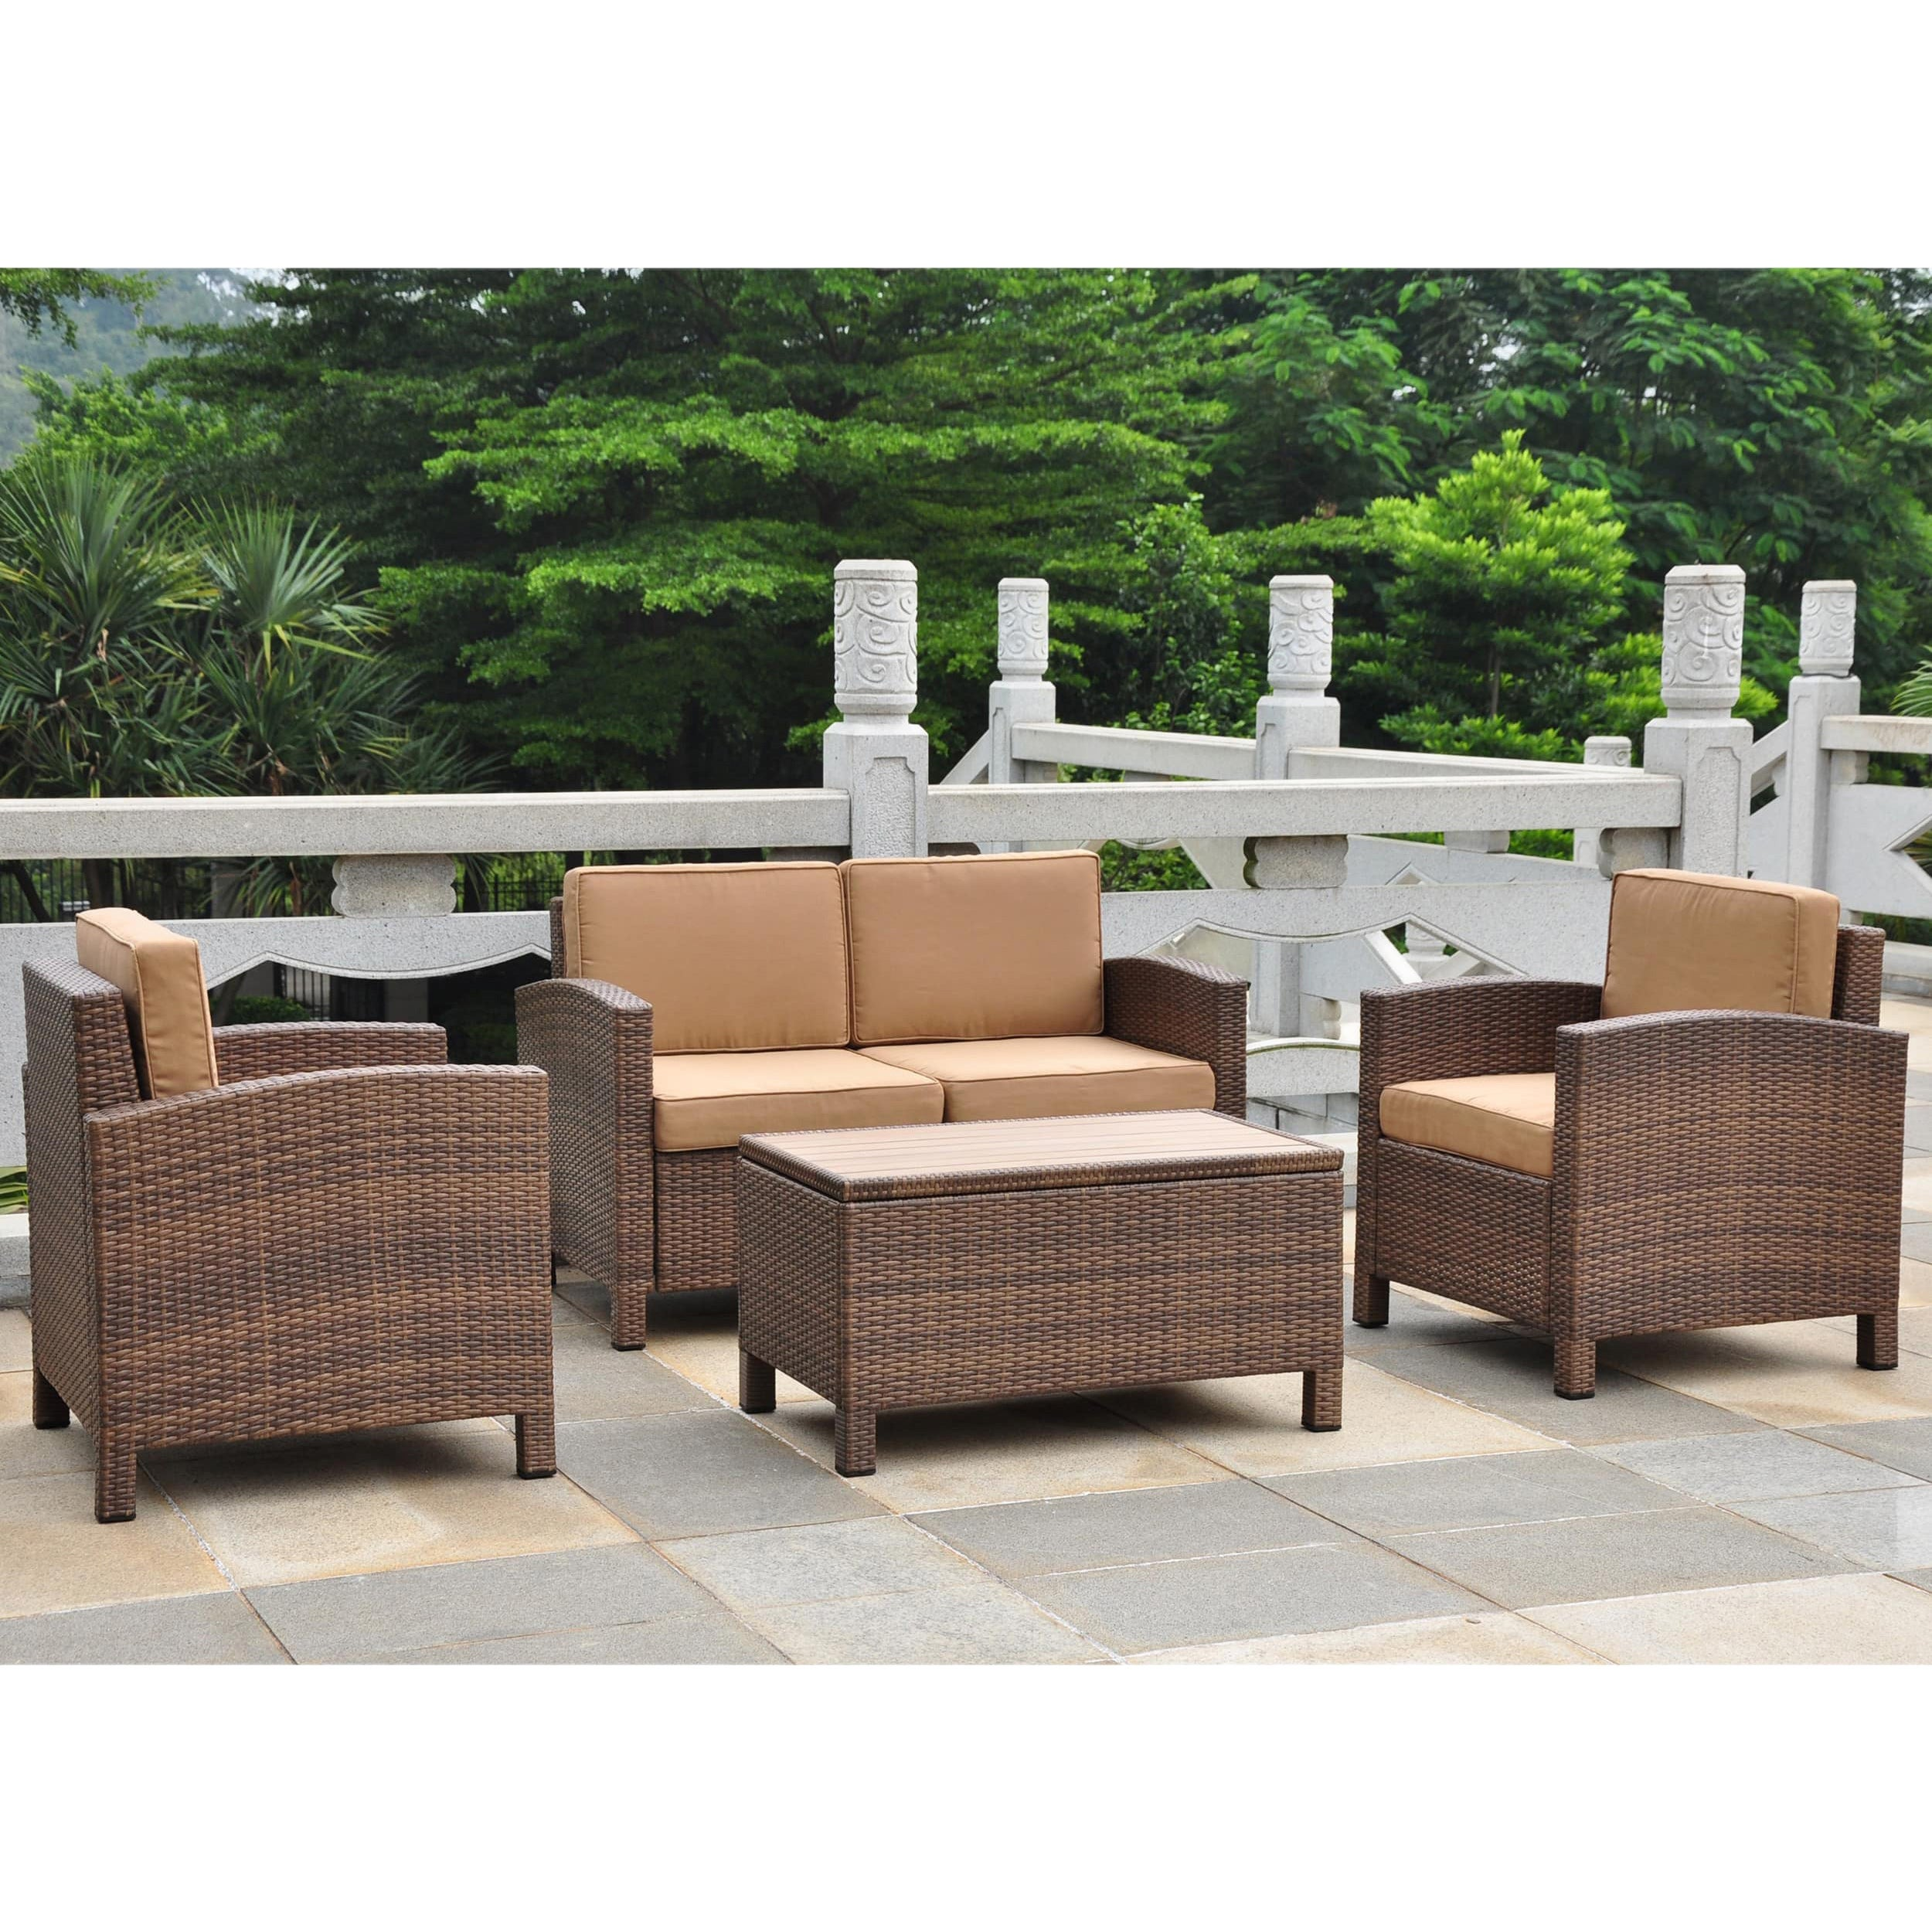 International Caravan Barcelona Resin Wicker Aluminum Conversation Patio Set With Cushions Set Of 4